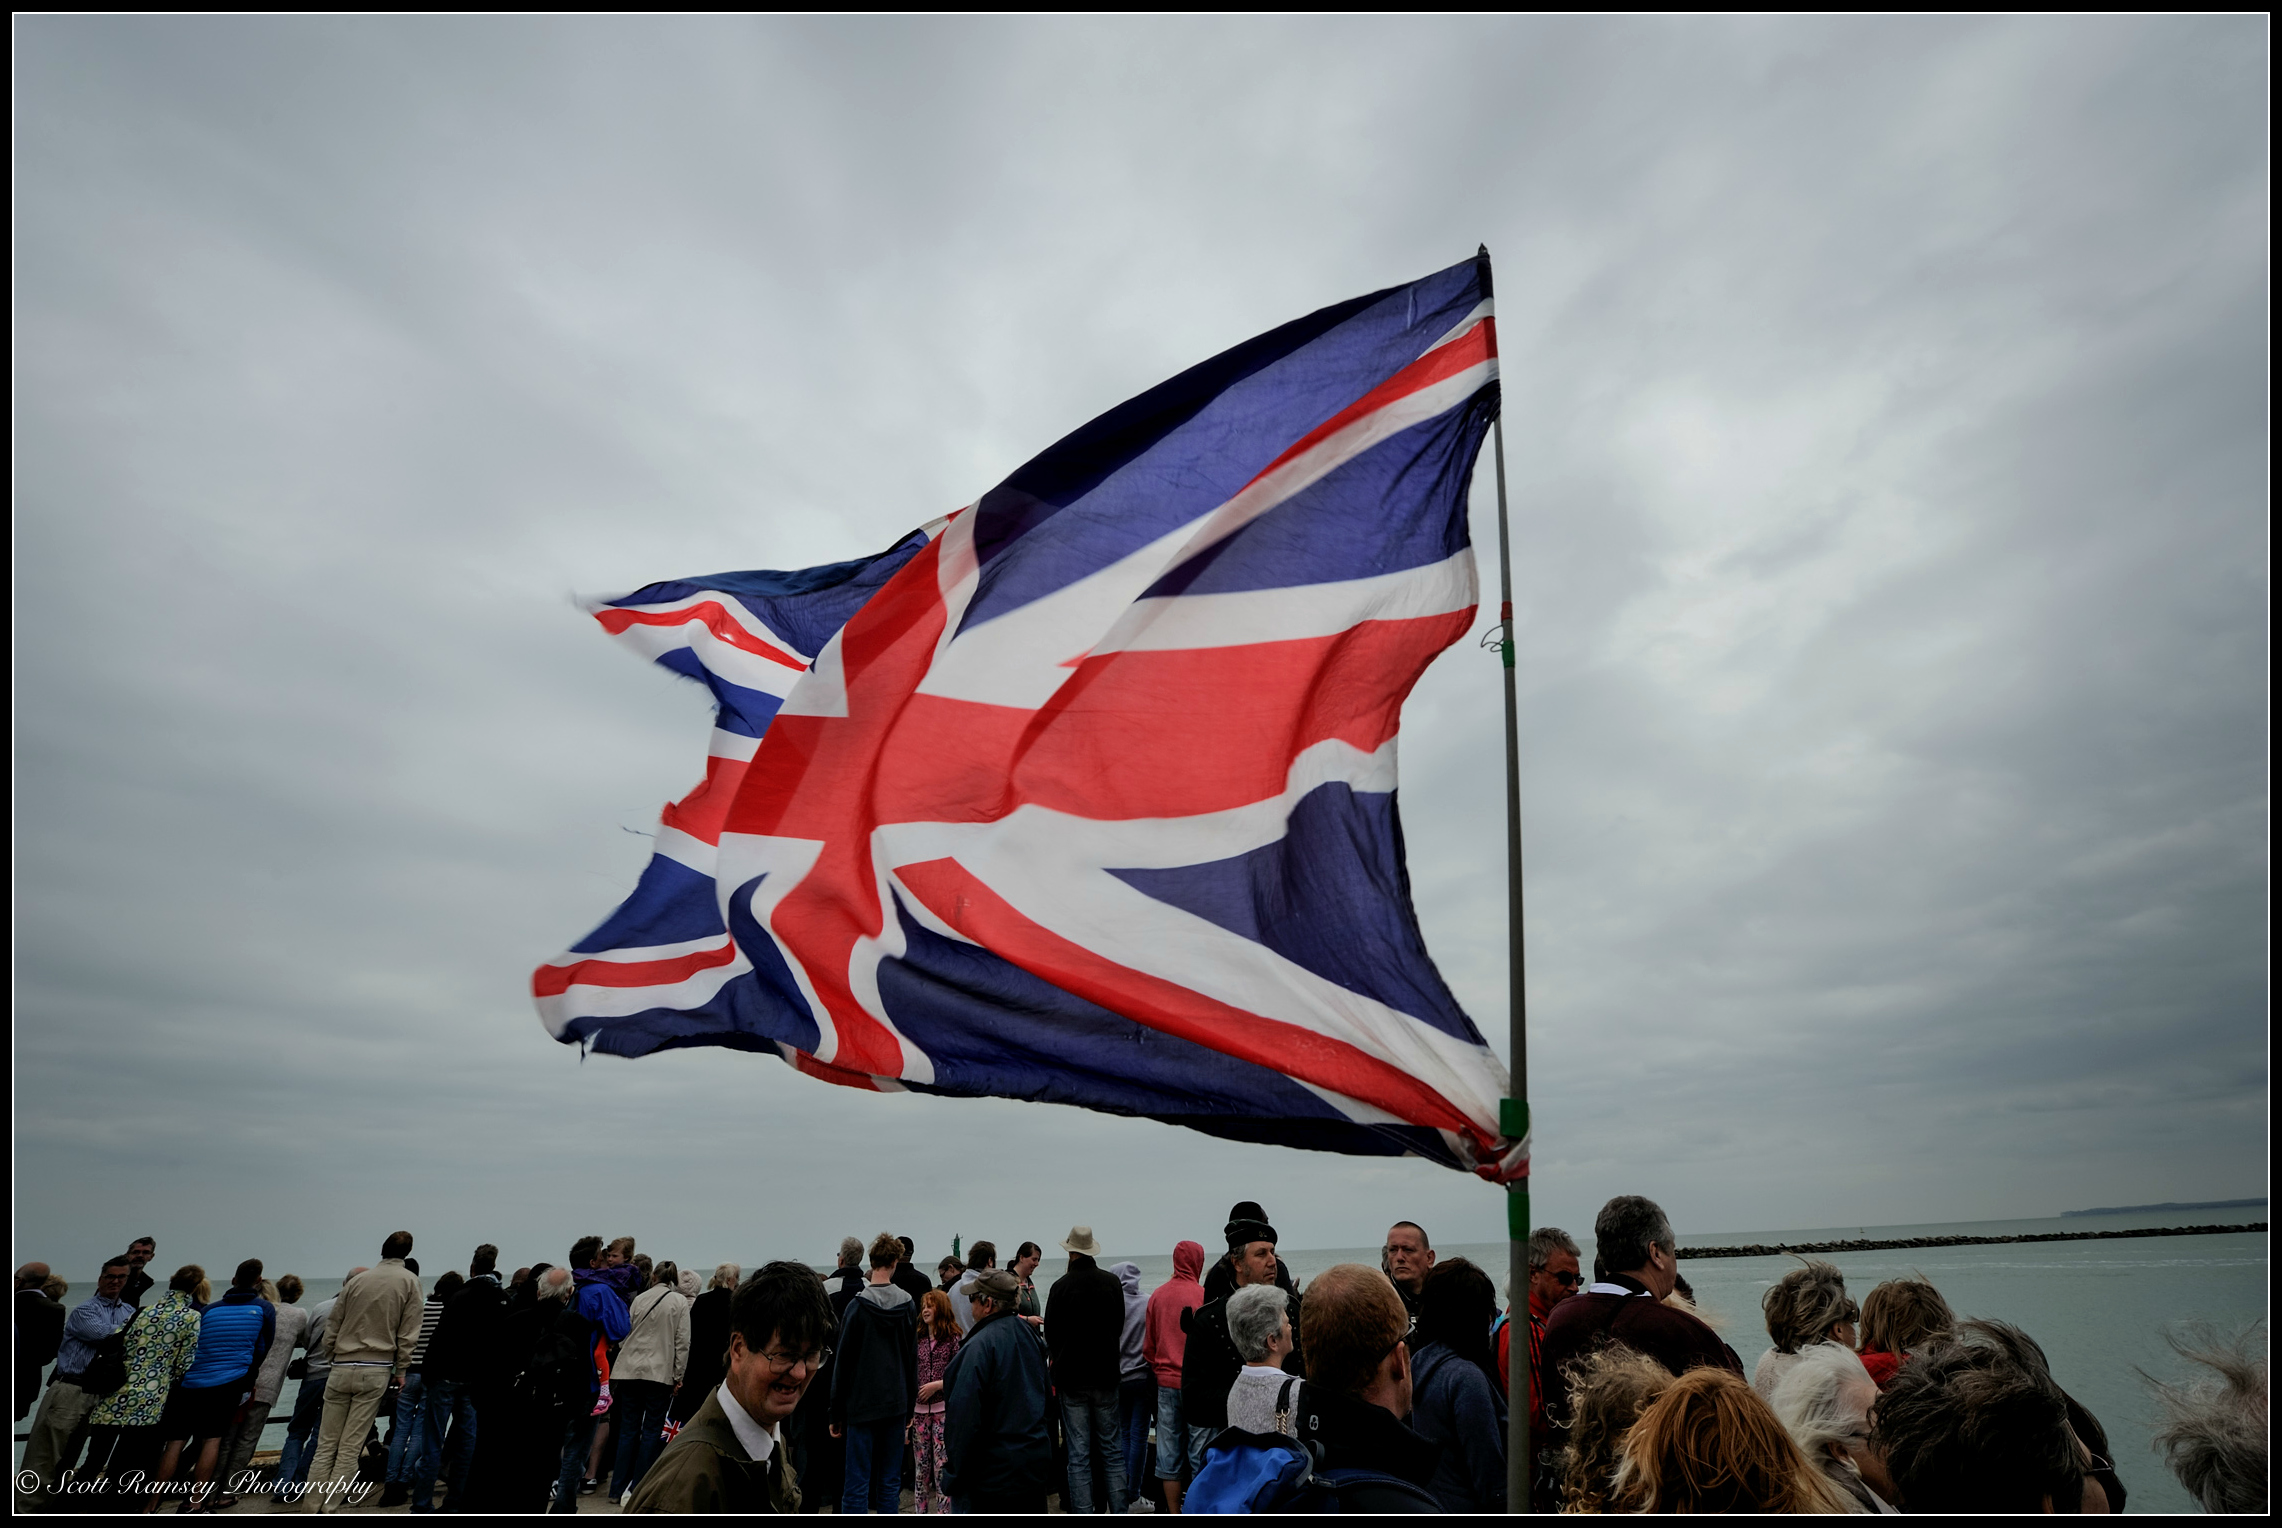 A spectator waves a Union Jack Flag in the sky whilst waiting for the Dunkirk Little Ships to return to the Royal Harbour Marina Ramsgate during a weekend of events to commemorate the 75th anniversary of Operation Dynamo.©Scott Ramsey Photography